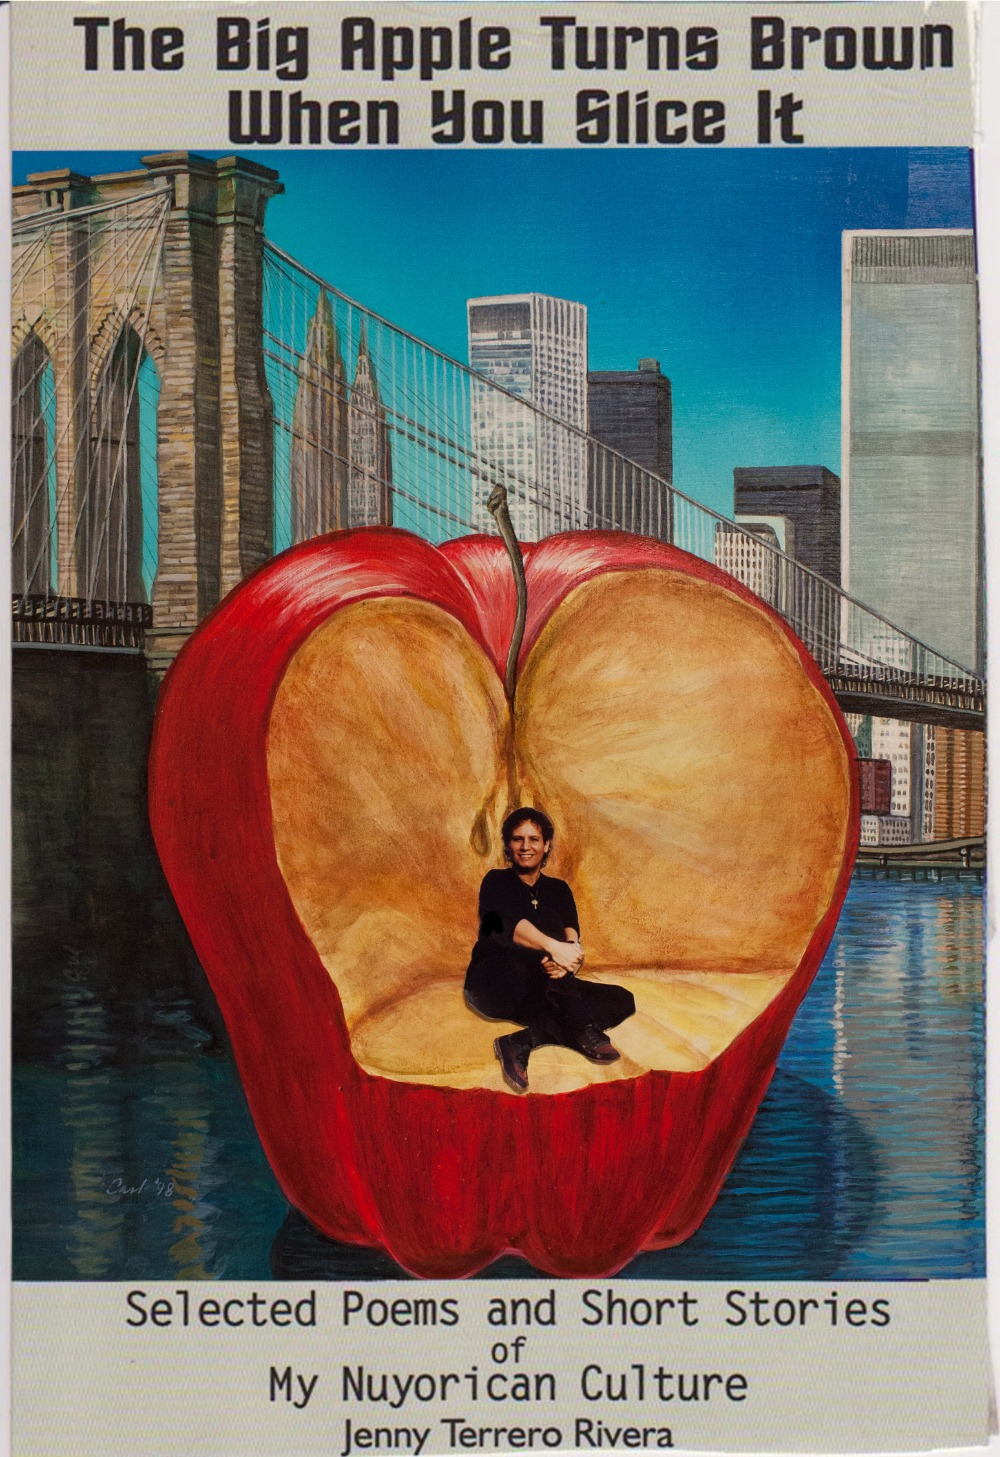 The Big Apple Turns Brown When You Slice It: Selected Poems & Short Stories of My Nuyorican Culture